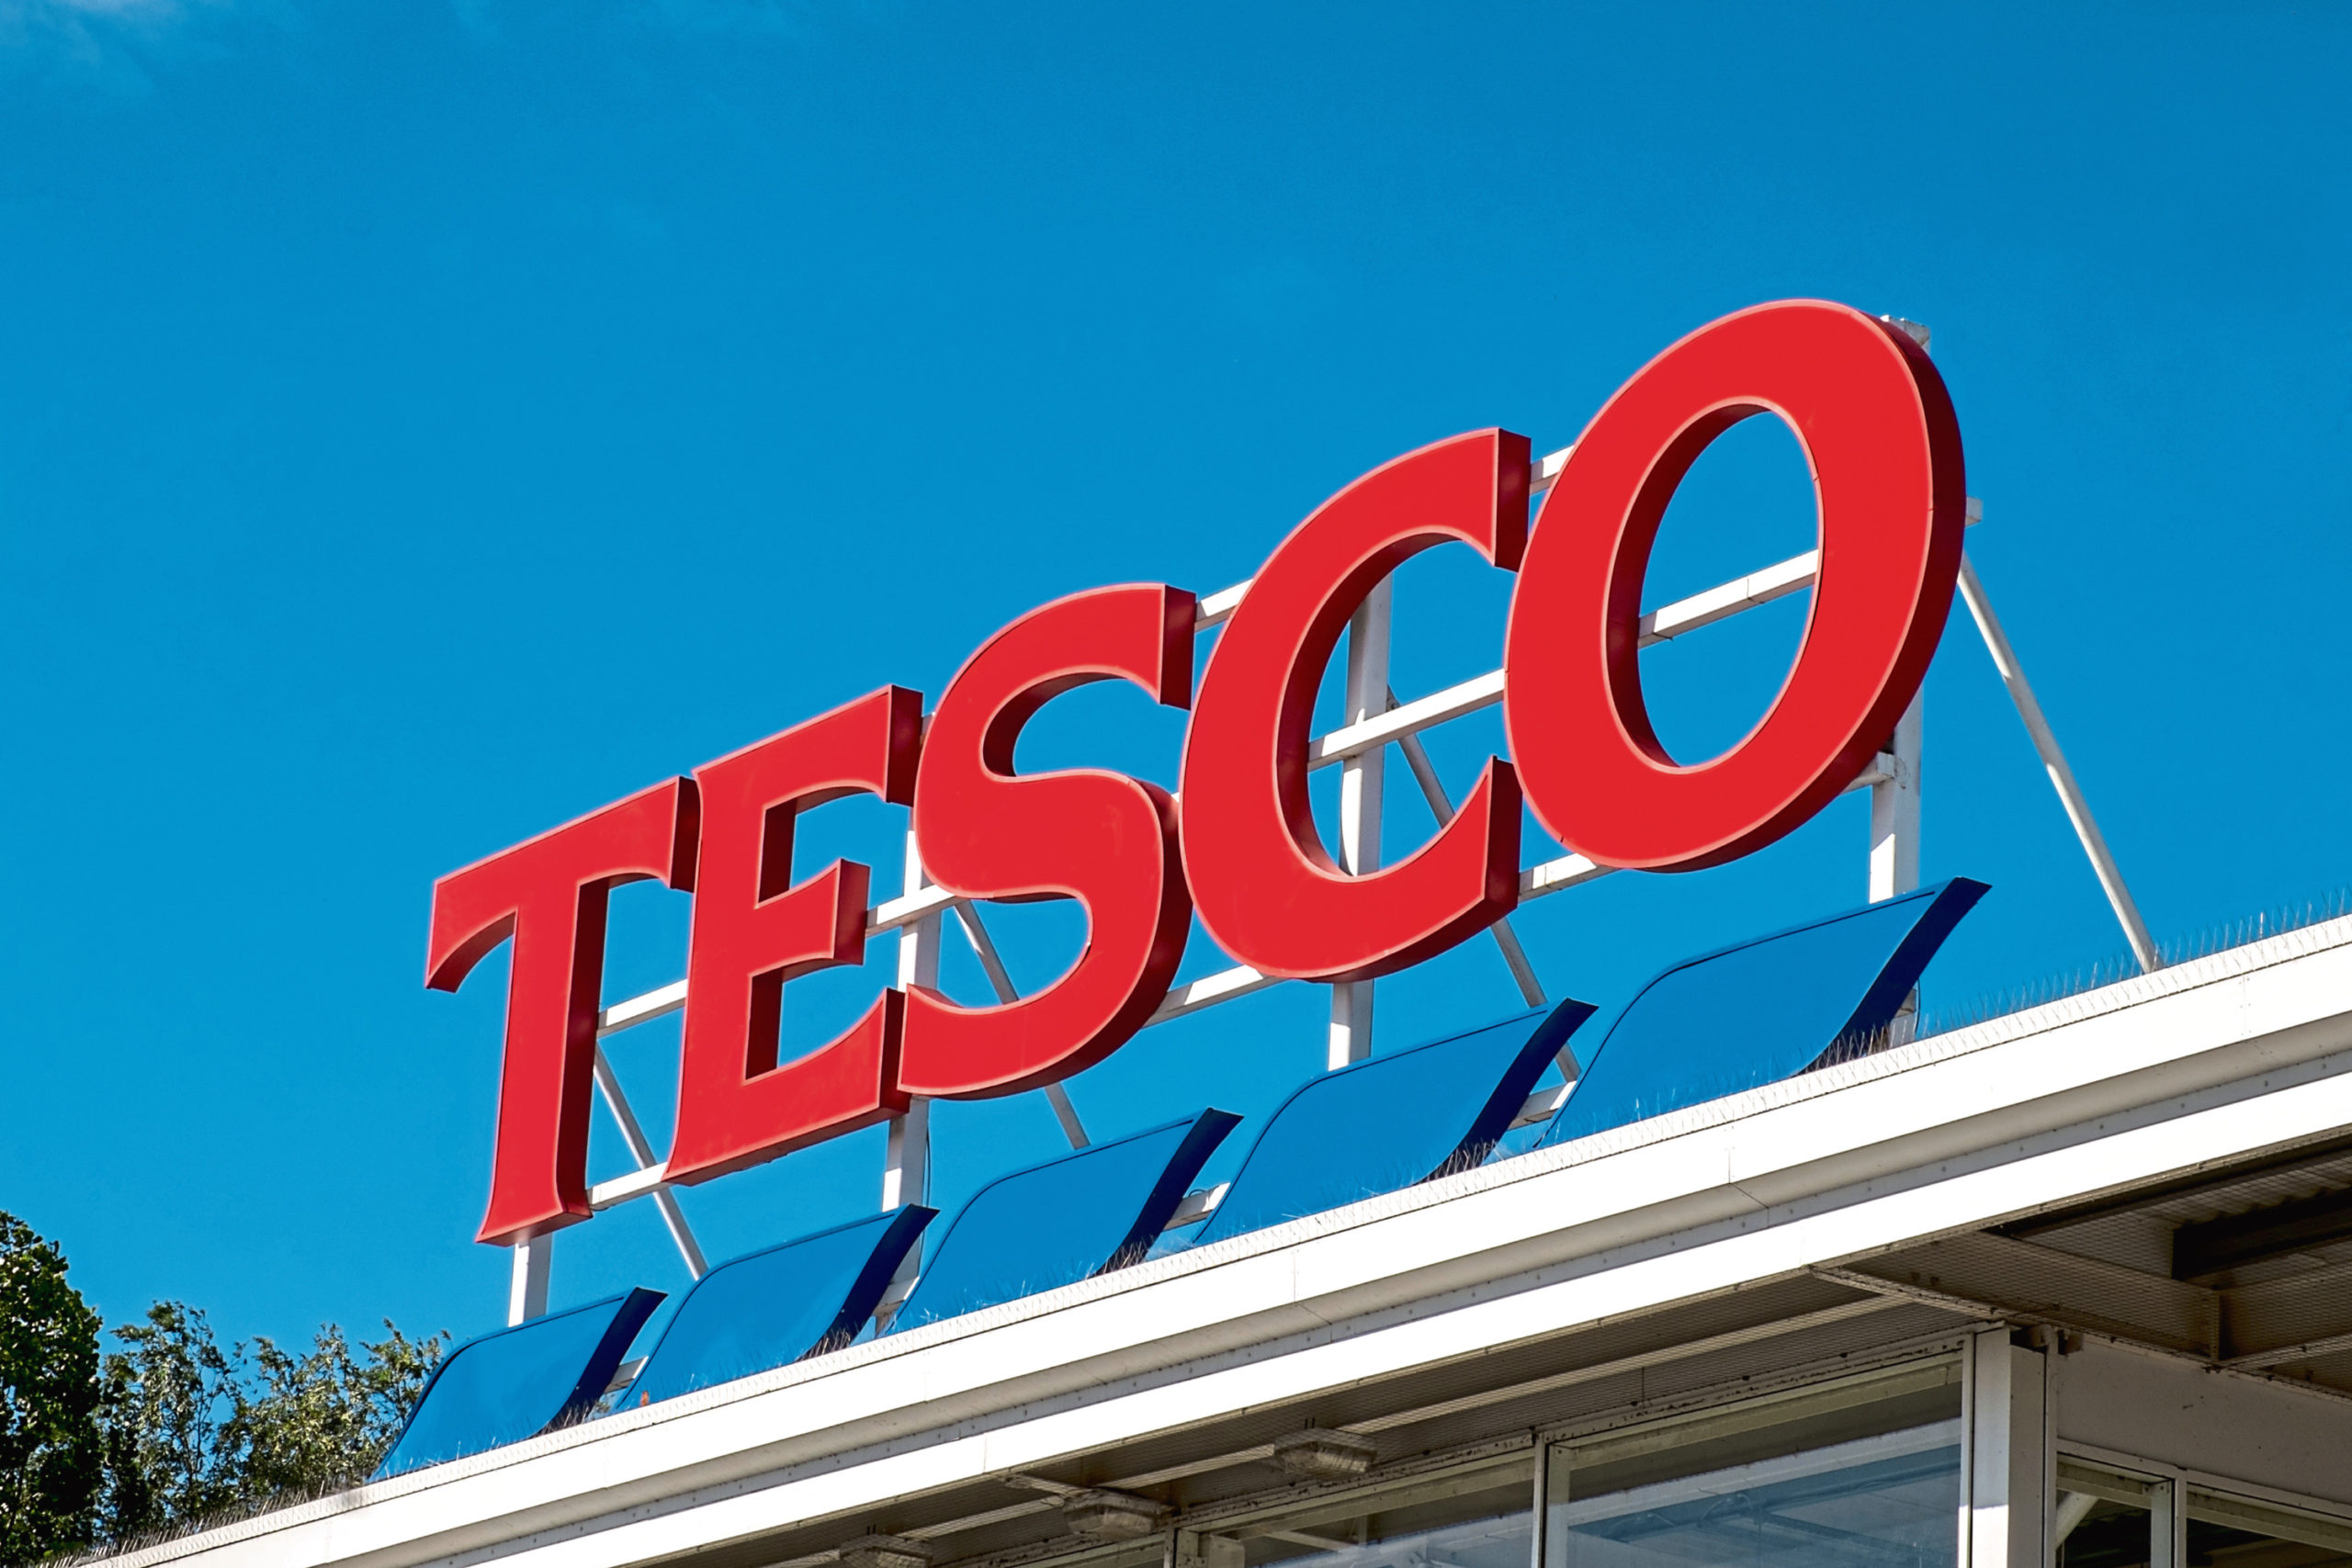 Greenpeace has criticised Tesco over soya use.